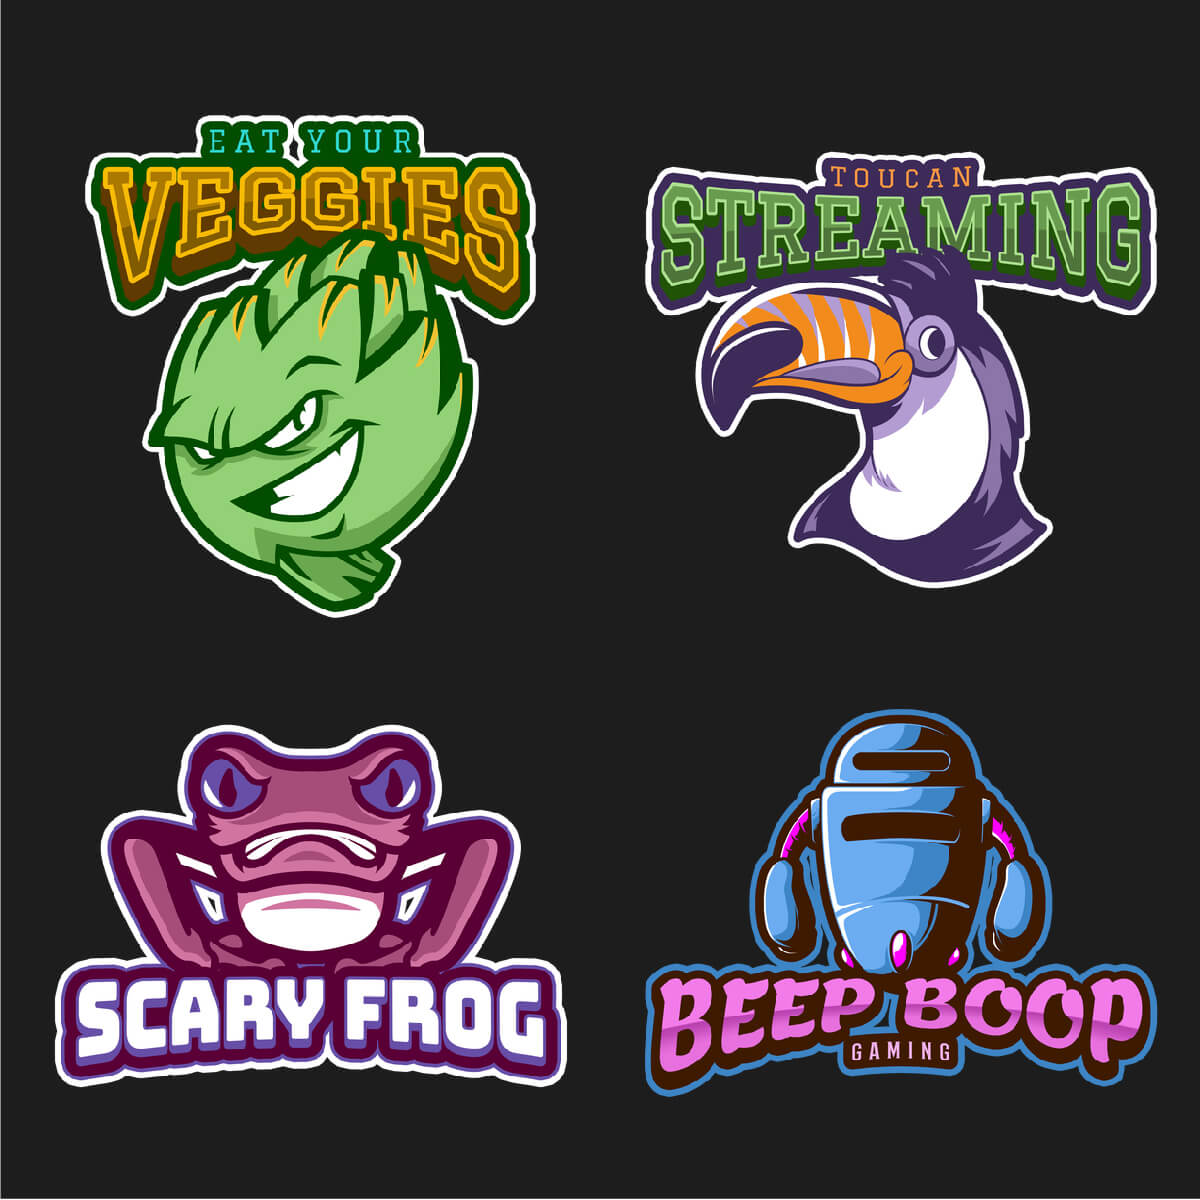 Gaming Logos Twitch Channel 2